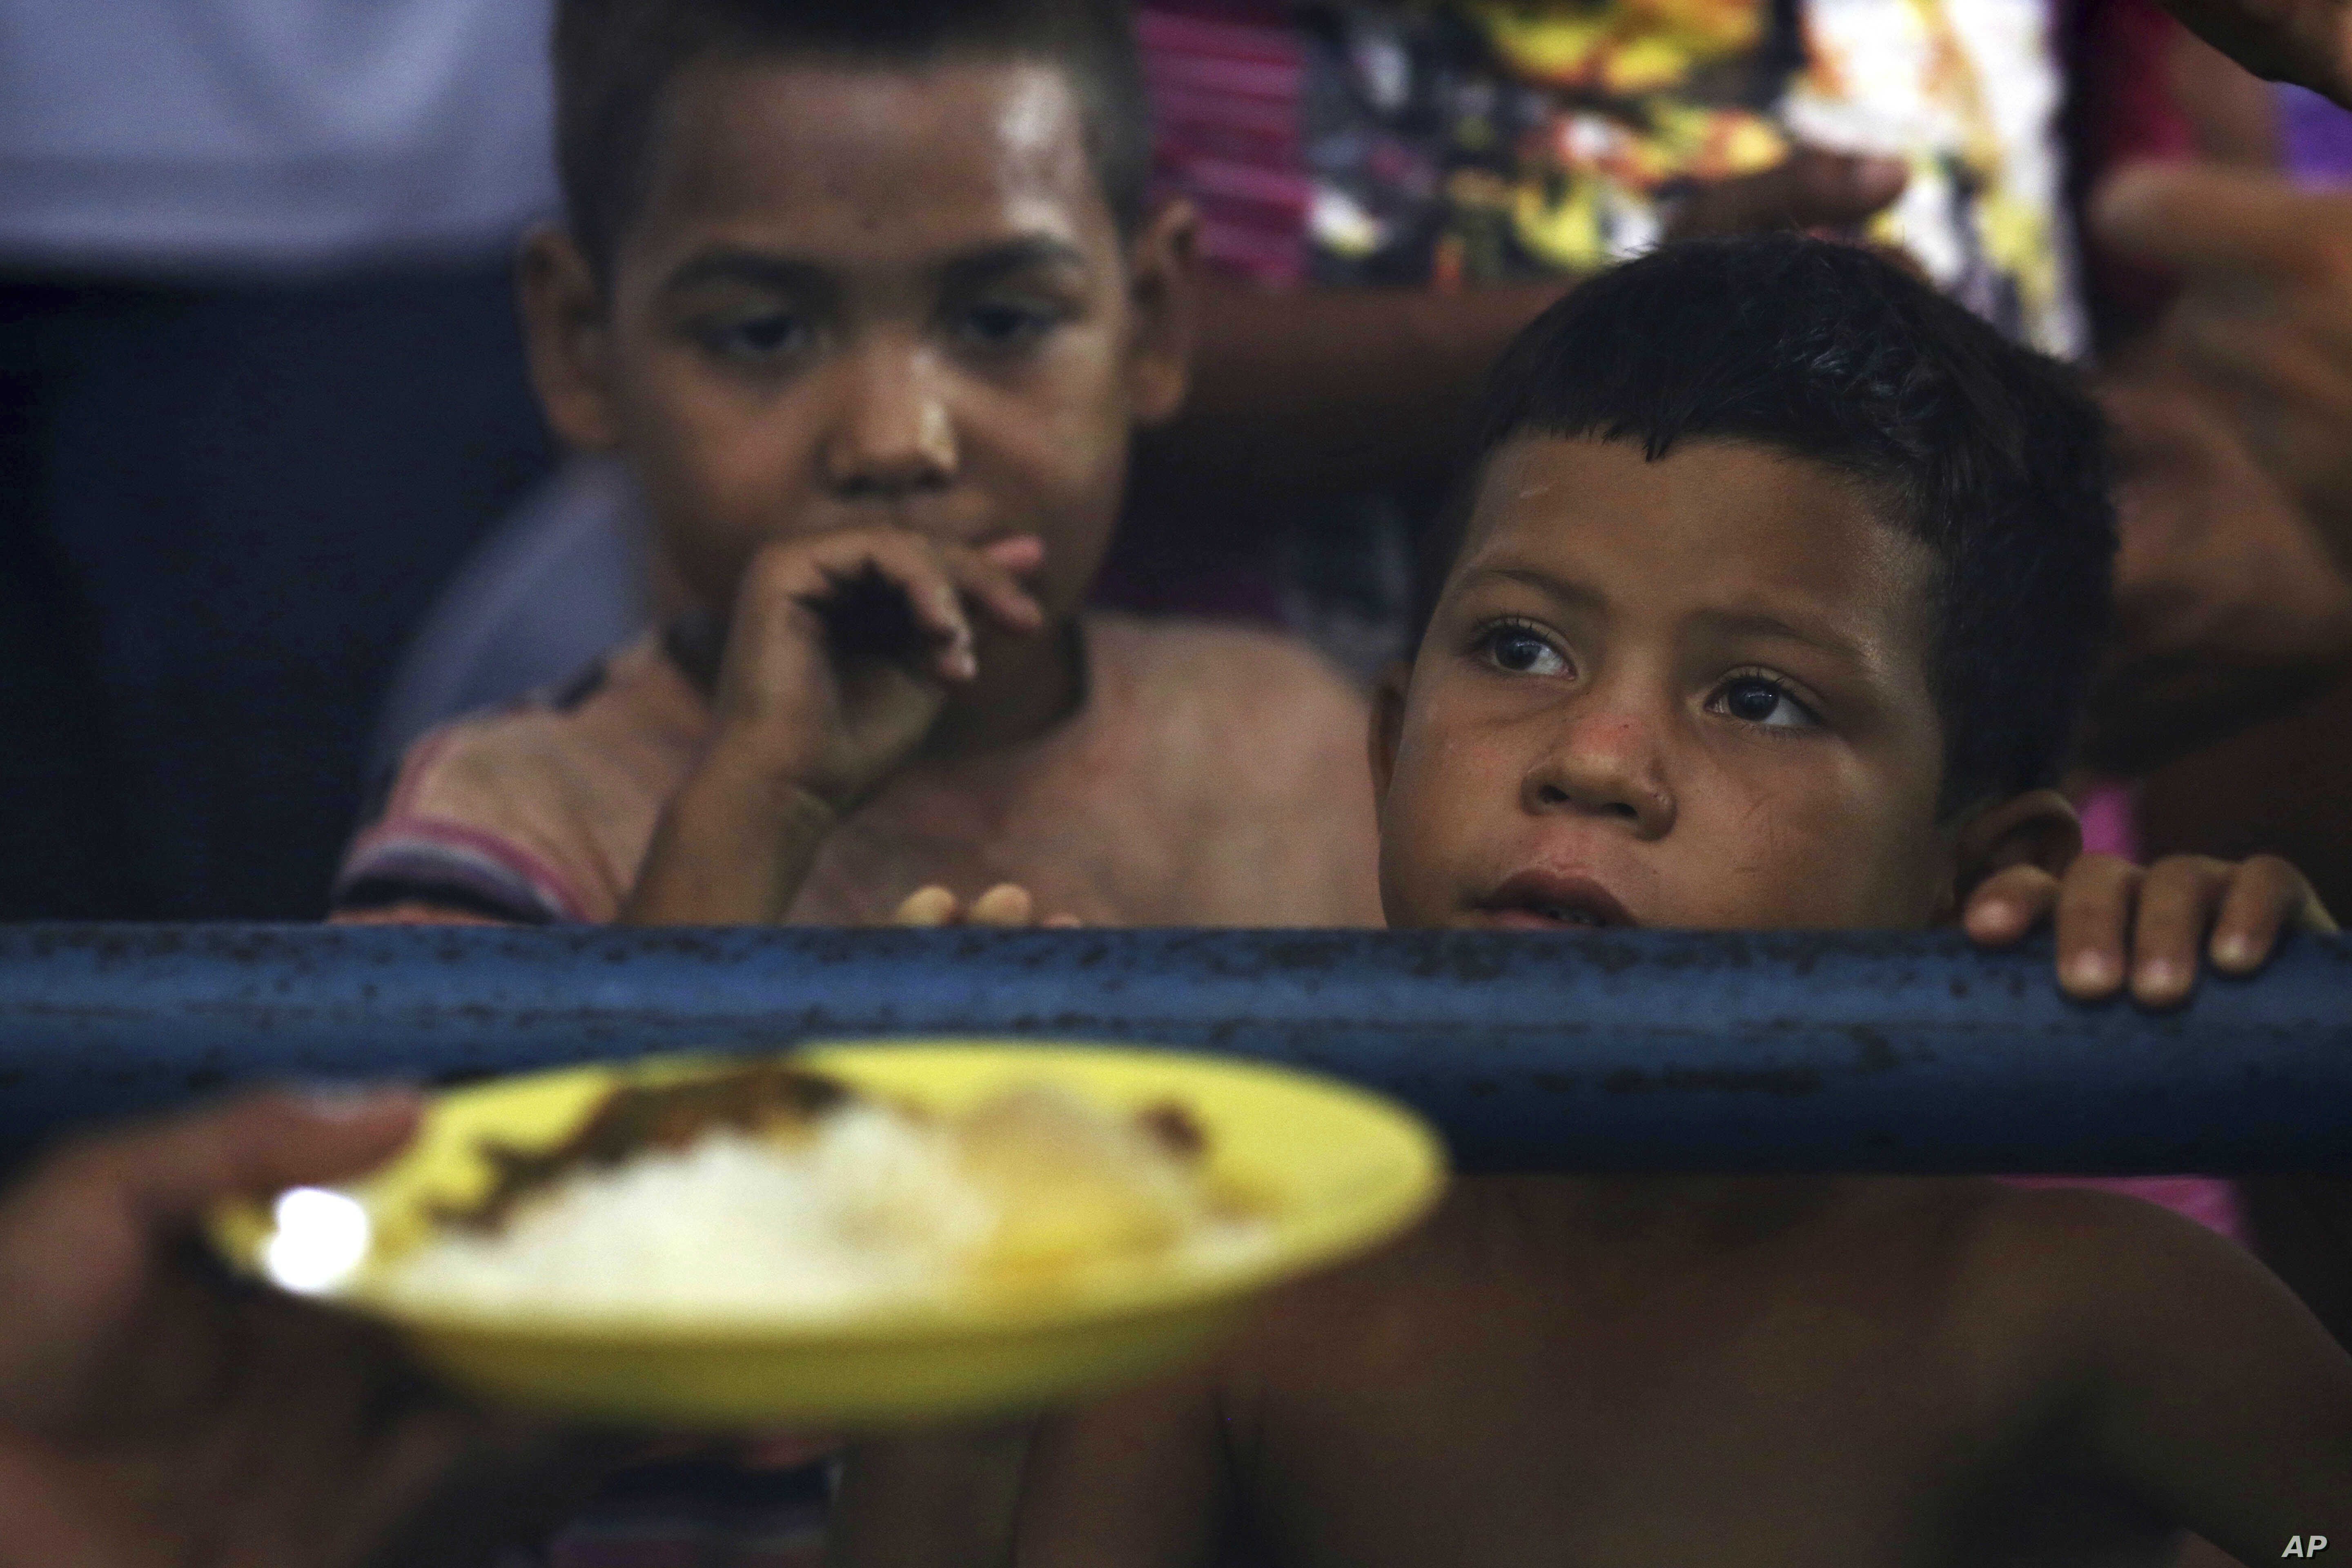 In this March 8, 2018 photo, Venezuelan children wait for a free meal at a migrant shelter set up at the Tancredo Neves Gymnasium in Boa Vista, Roraima state, Brazil.